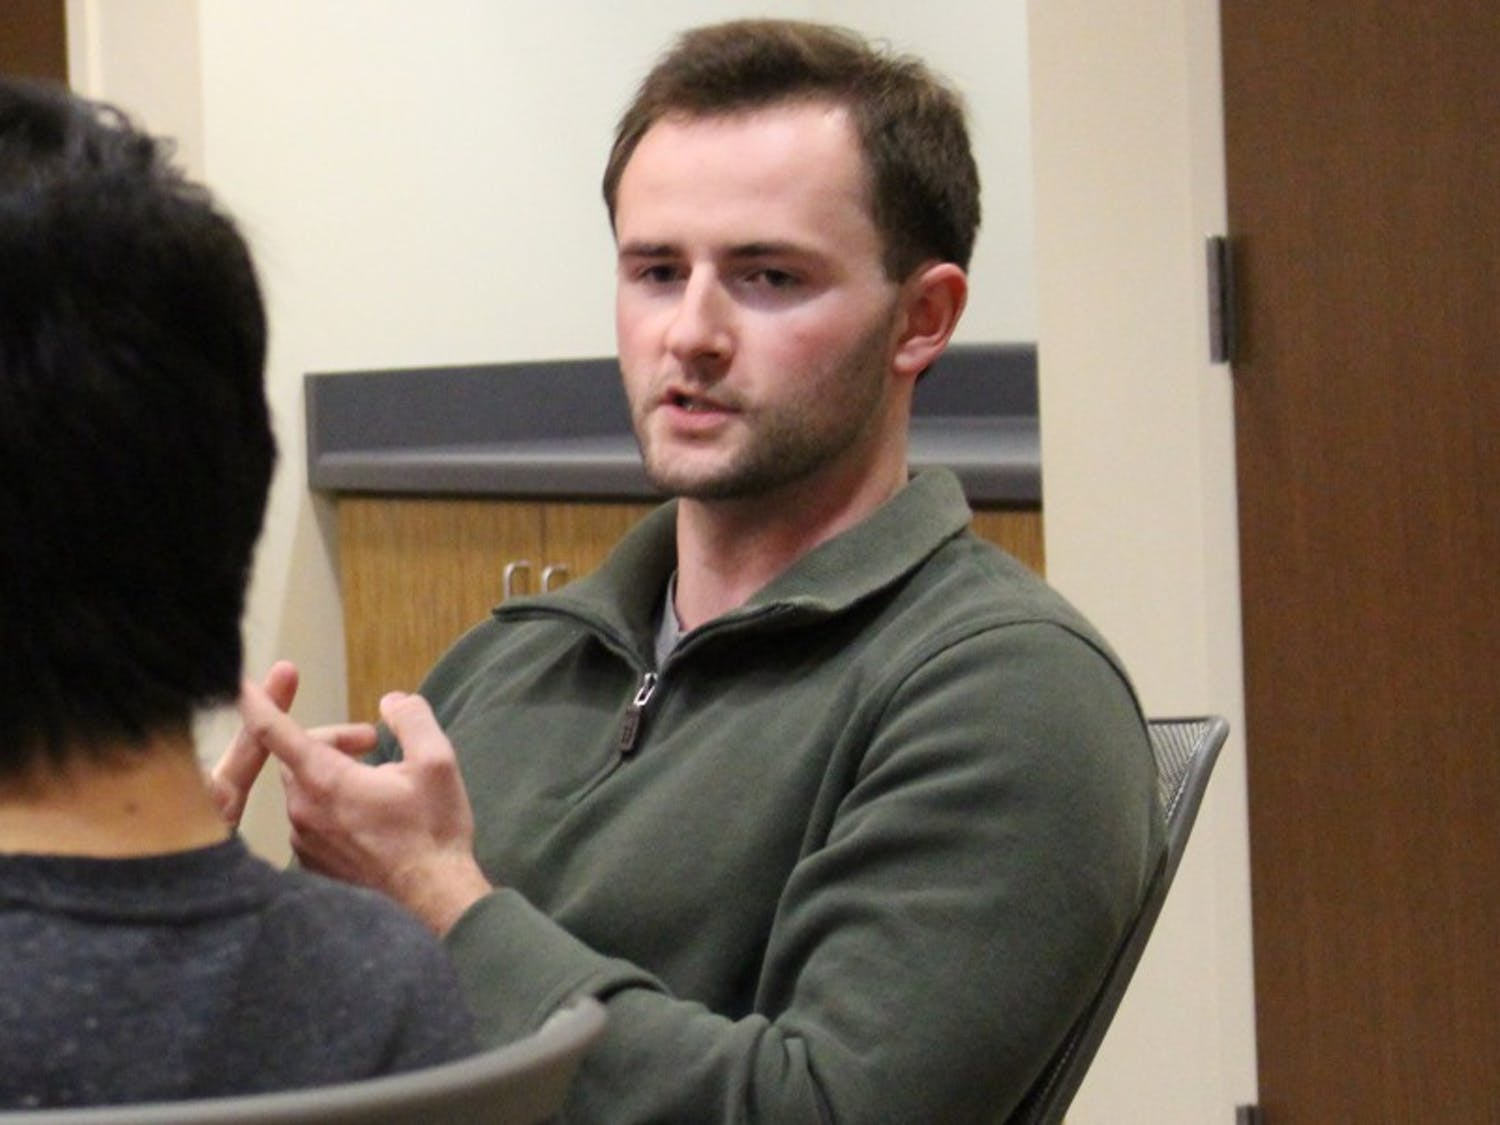 Alumnus Zach Wood, who graduated last year from UW-Madison, serves as alder for District 8.